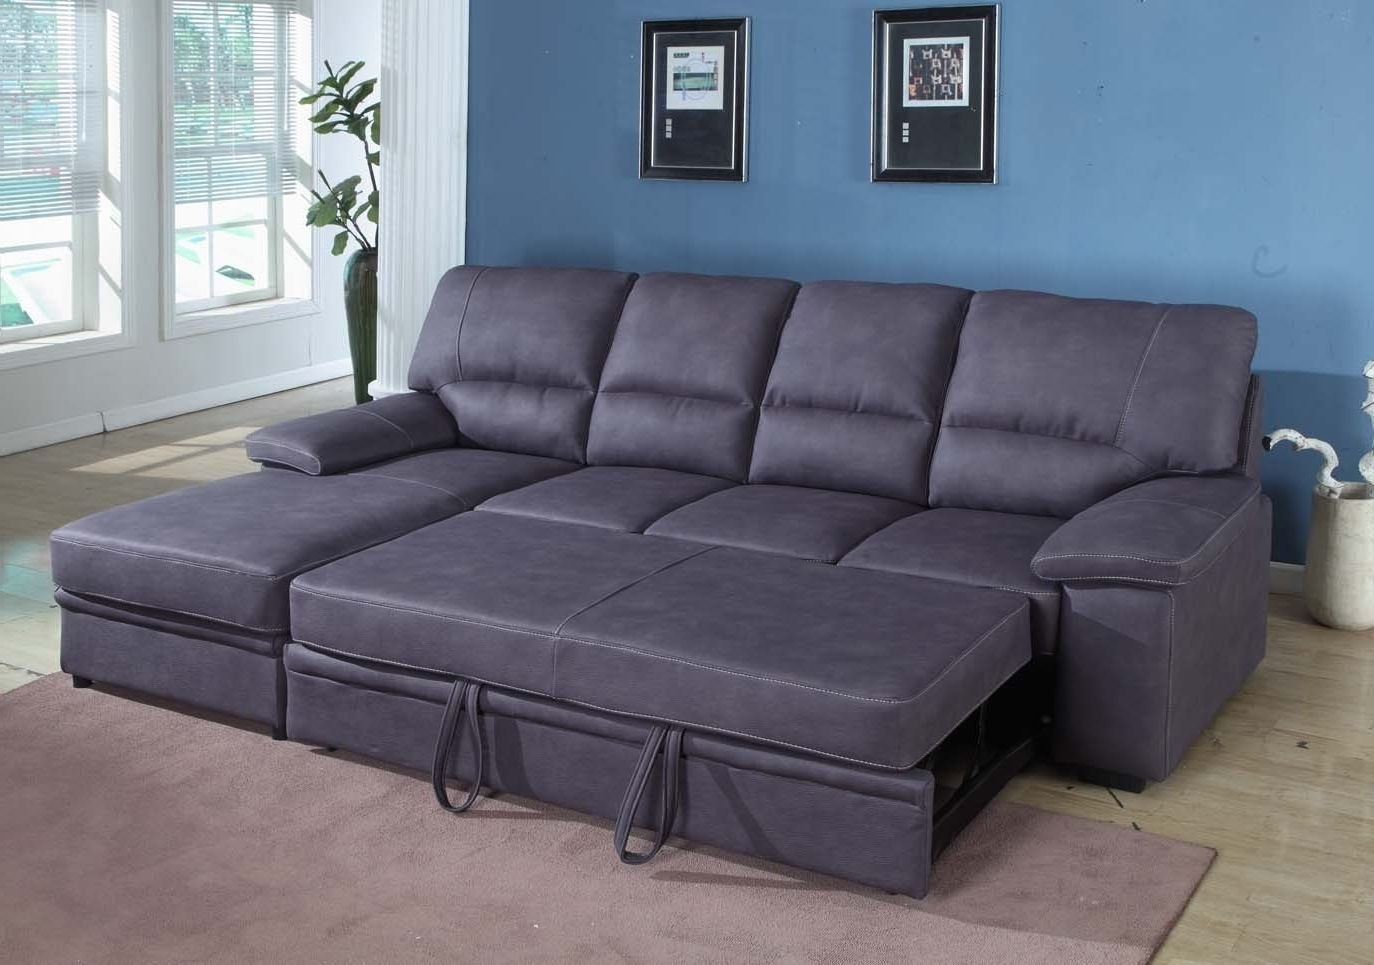 Most Popular Brilliant Sectional Sleeper Sofa With Chaise Cool Living Room With Regard To Sectional Sleeper Sofas With Chaise (View 6 of 15)